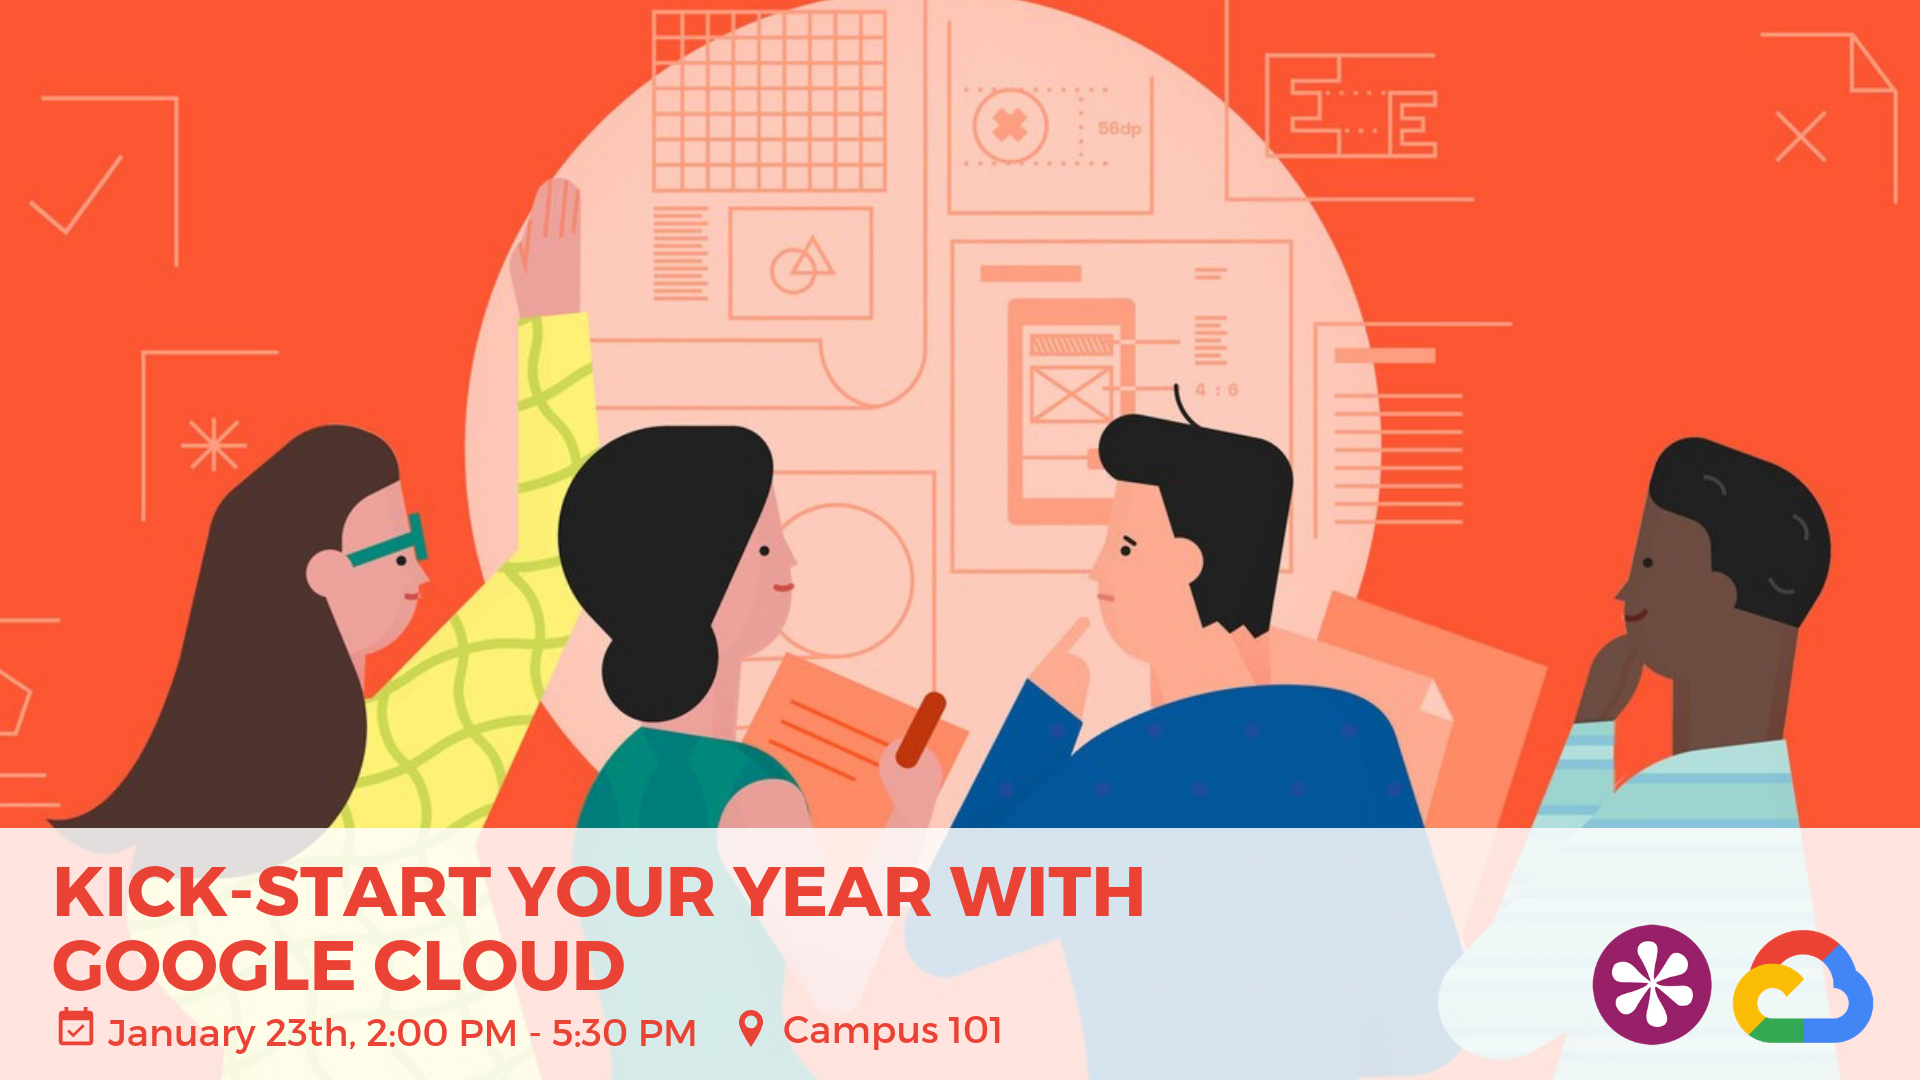 Kick start your year with Google Cloud - Website